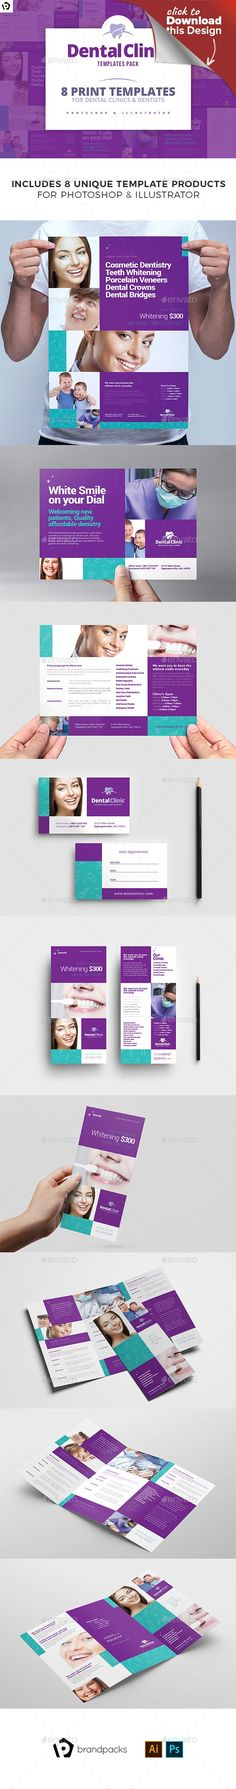 3 fold, appointment card, BrandPacks, clean, corporate, dental, dental clinic, dental practice, dentist, DL card, flyer, flyers, folding, grid, medical, poster, purple, rack card, three fold, tri-fold, tri-fold brochure, tri-fold brochure template, trifold, trifold brochure, trifold brochure template Dental Clinic Templates Bundle for Adobe Photoshop & Adobe Illustrator   These stylish, clean and professional template designs will help promote any dentist as modern, competent and safe....